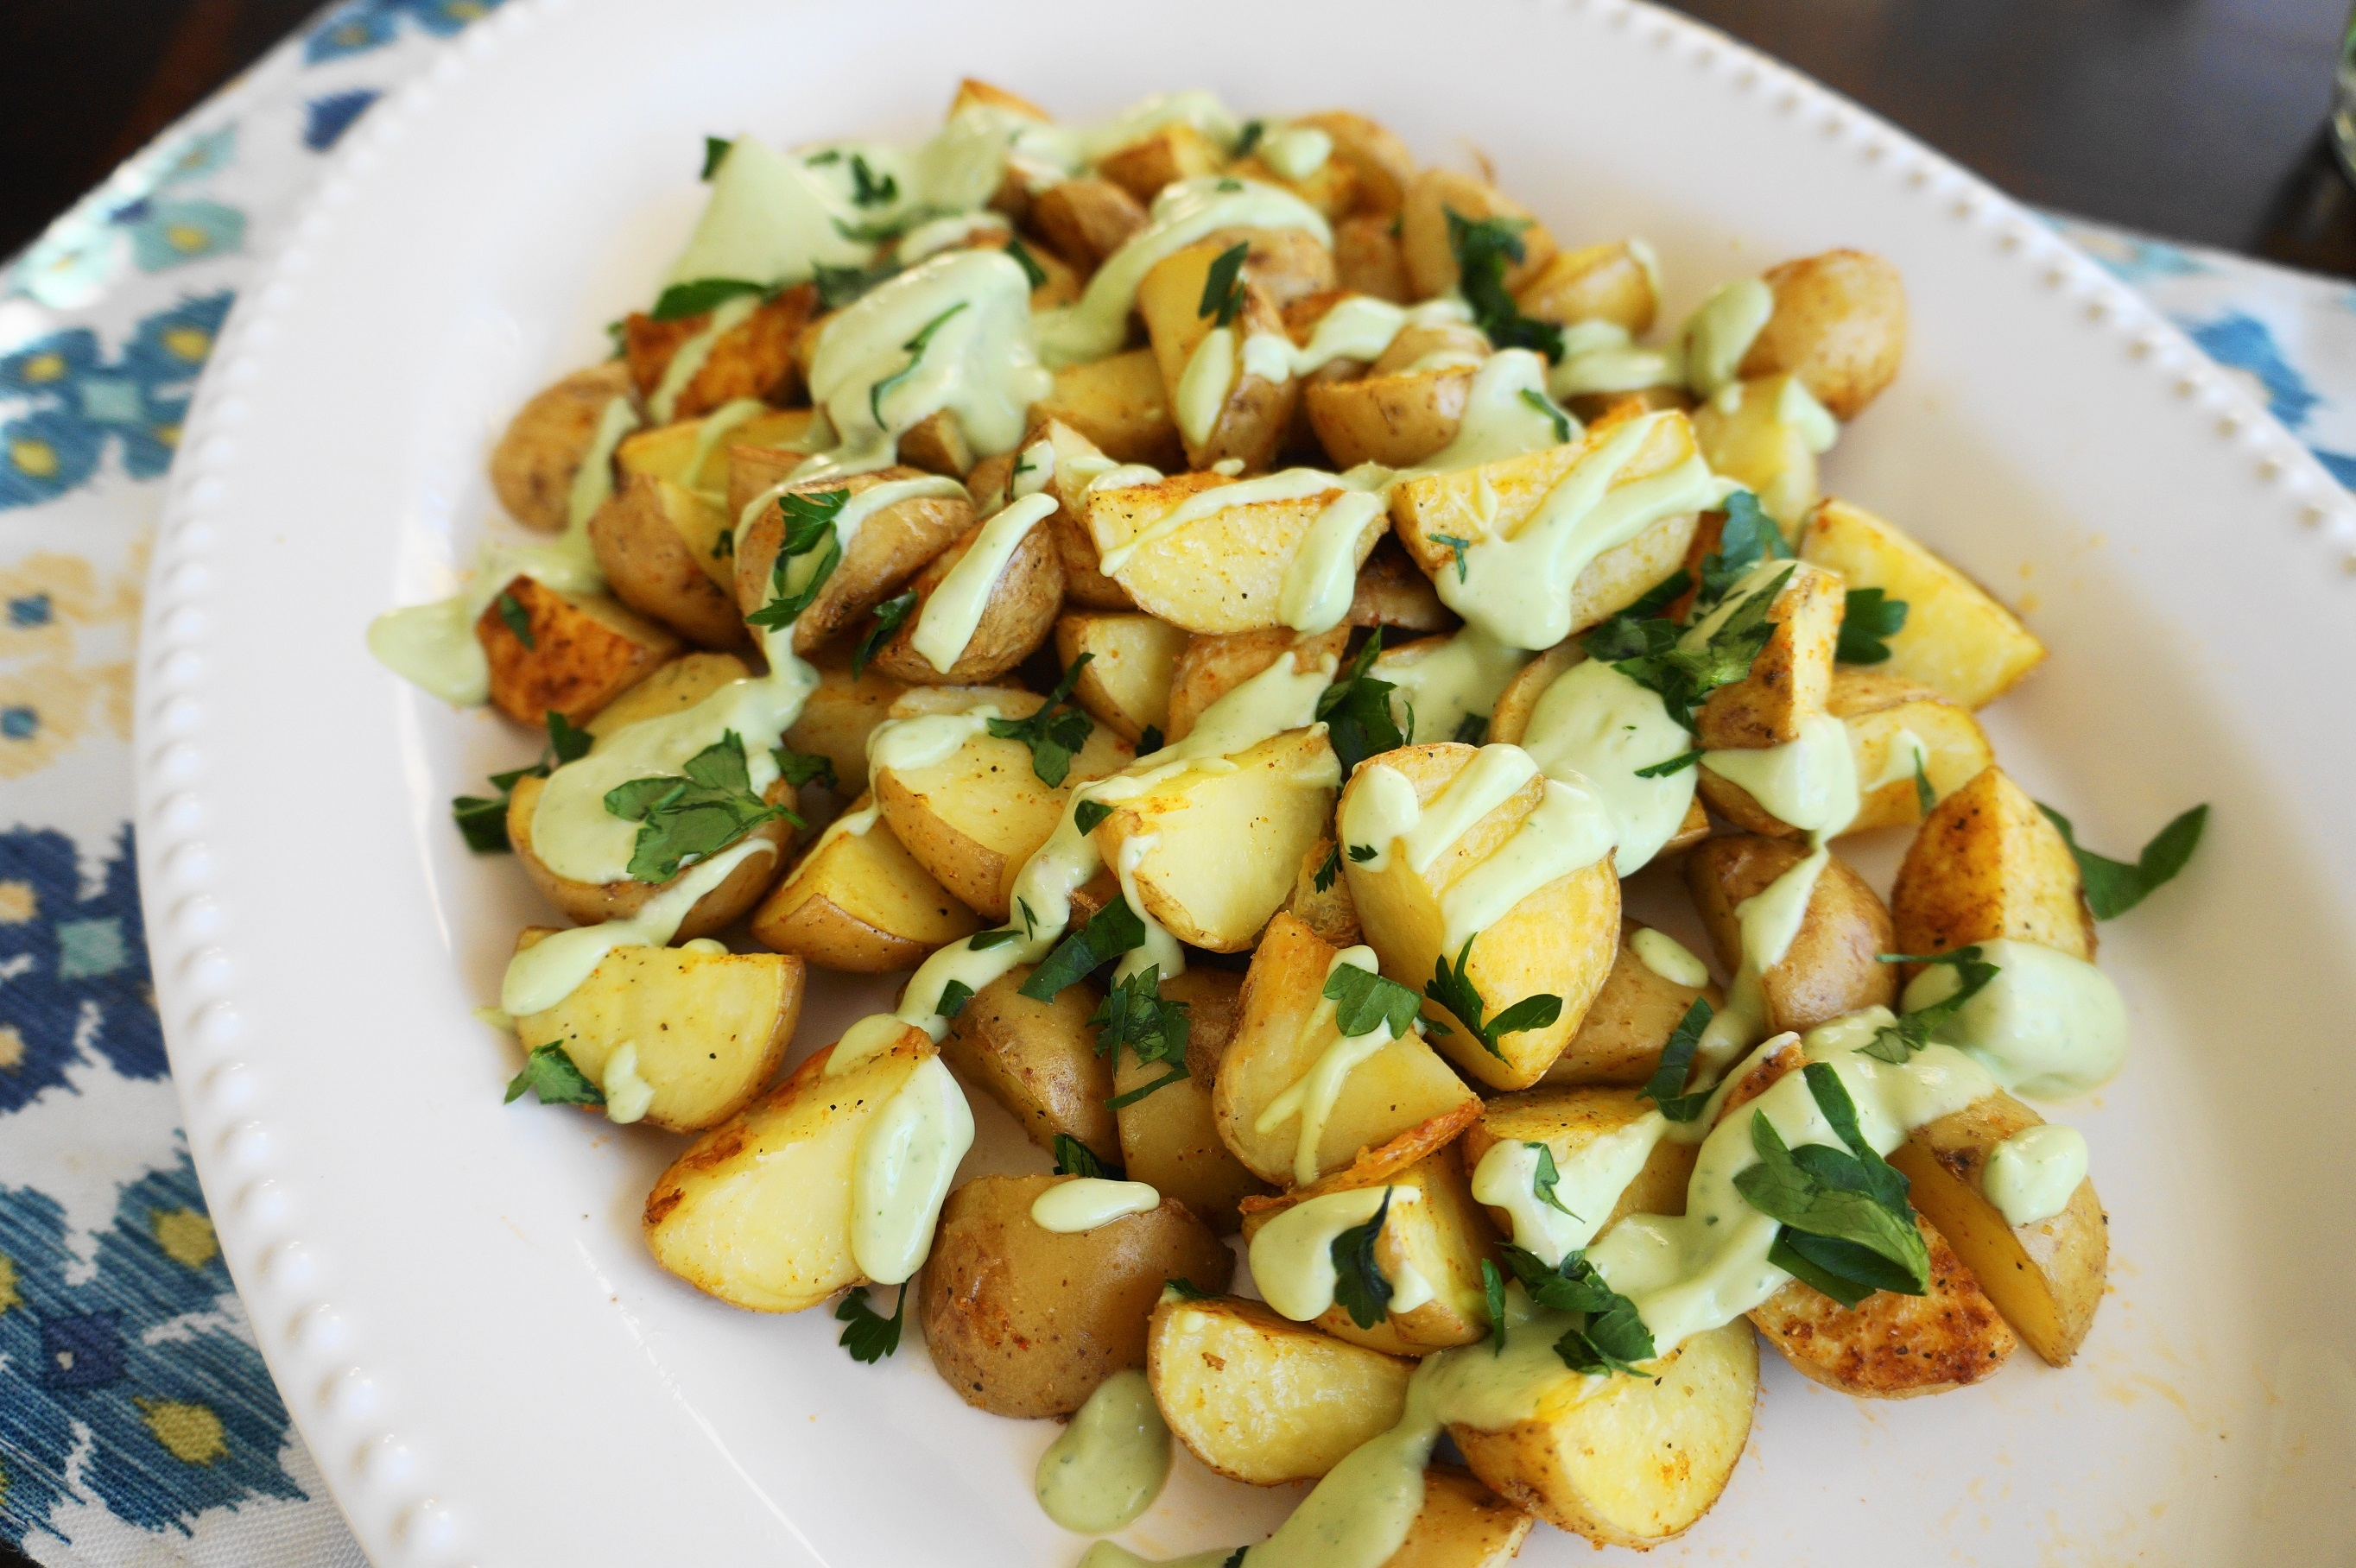 Crispy Roasted Potatoes with Avocado-Lemon Aioli (V, GF) | Busy Girl Healthy World